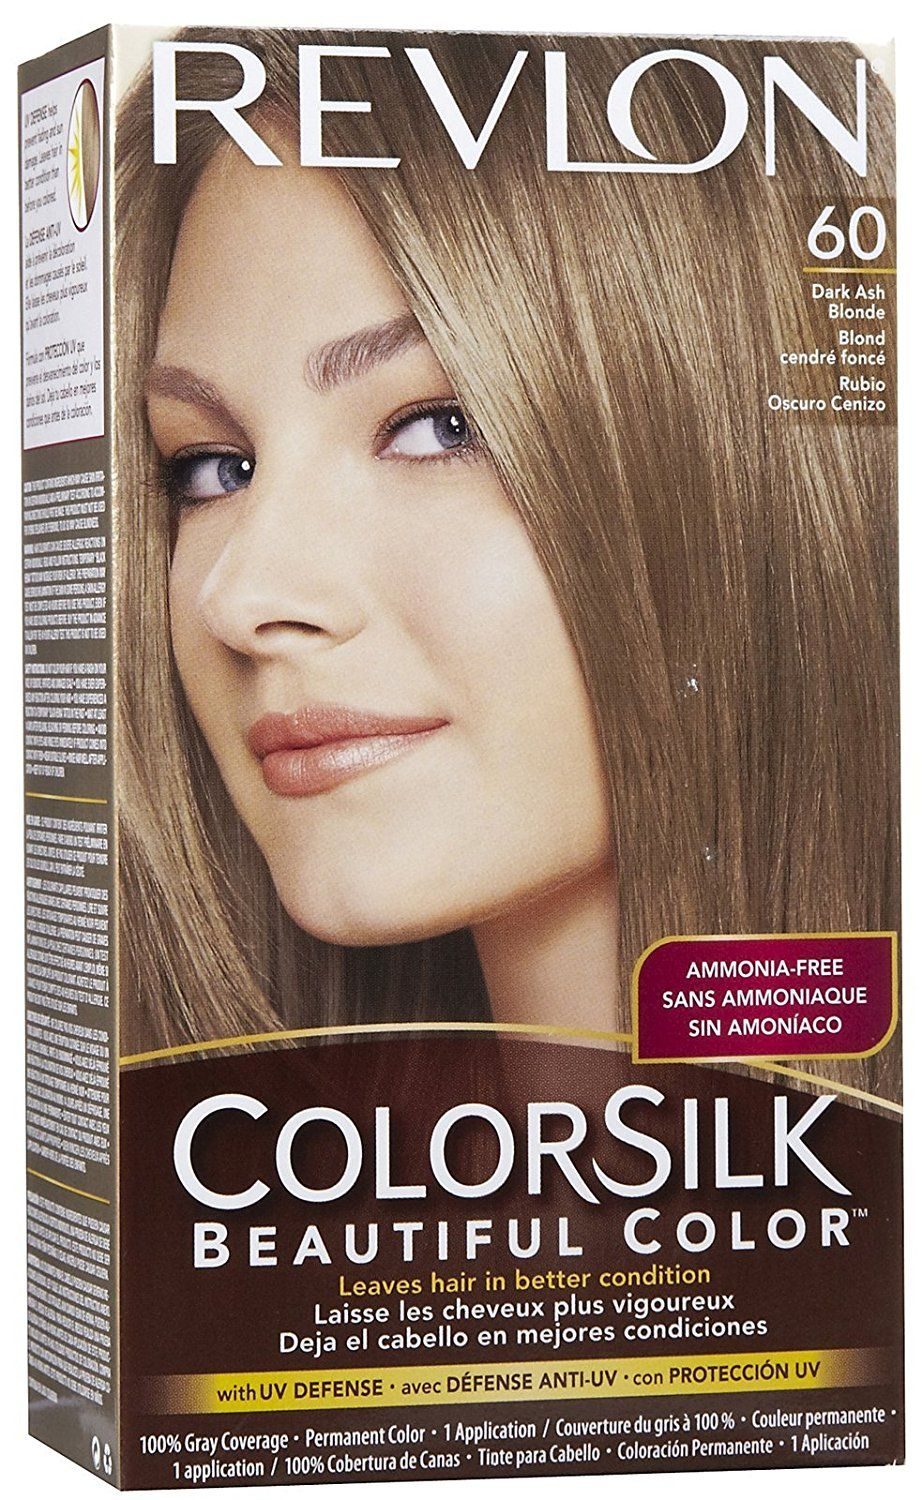 Revlon Colorsilk Beautiful Haircolor Ammonia-free Permanent Haircolor (-60 Dark Ash Blonde), 1 Count (Pack of 12) * You can find more details by visiting the image link.